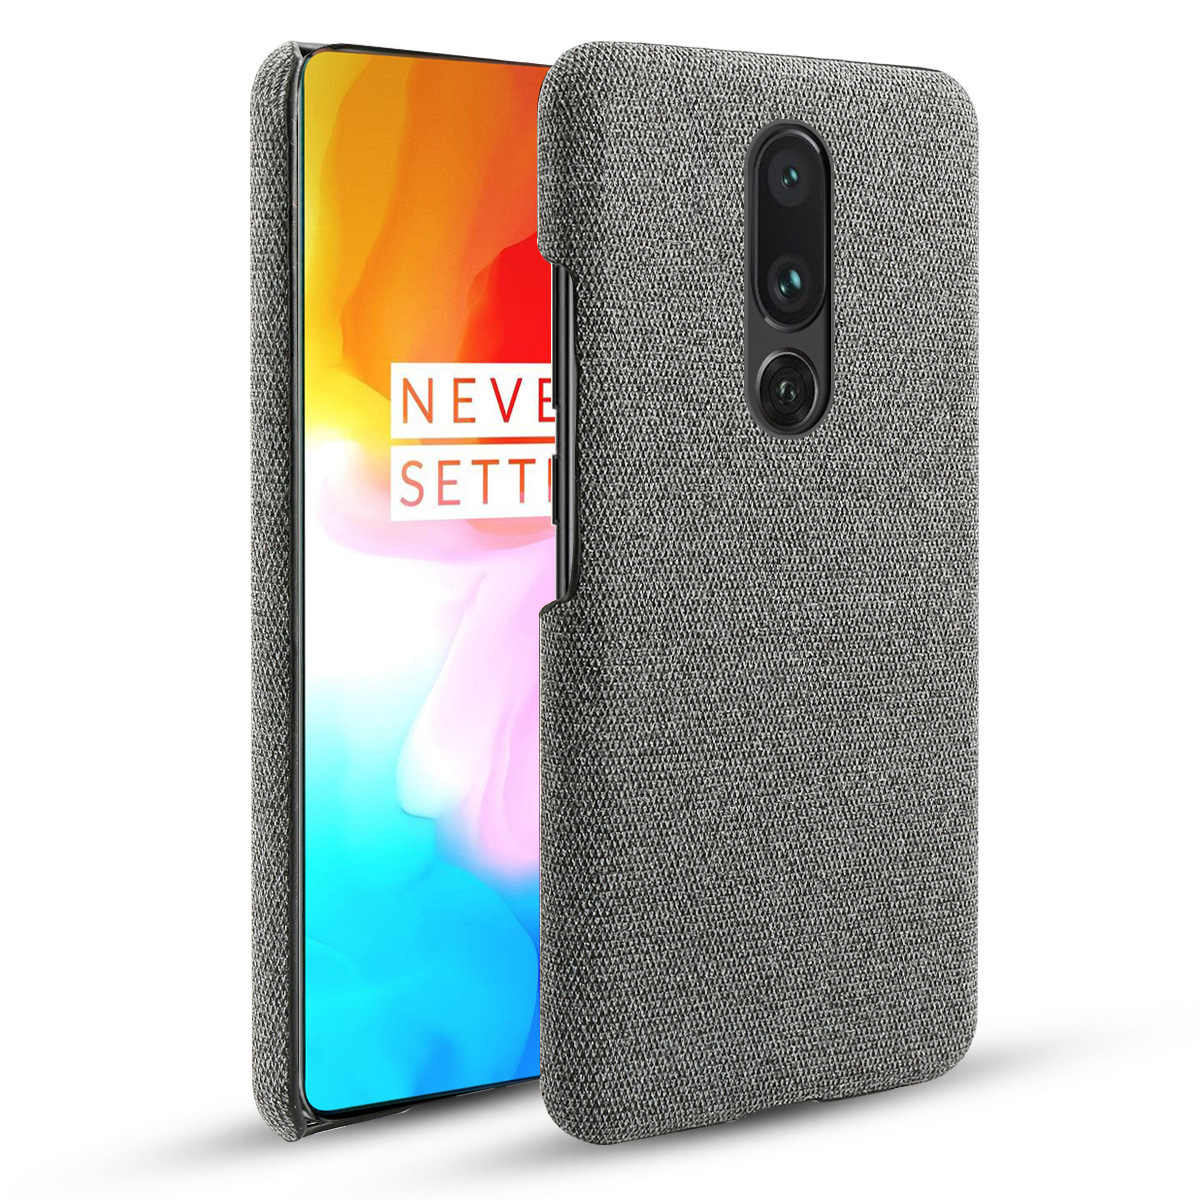 Voor Oneplus 7 7 Pro Case Slim Vintage Geweven Stof Doek Hard PC Cover Voor Een Plus 7 Pro Oneplus 7 6 6T 6T 5G Case Shockproof